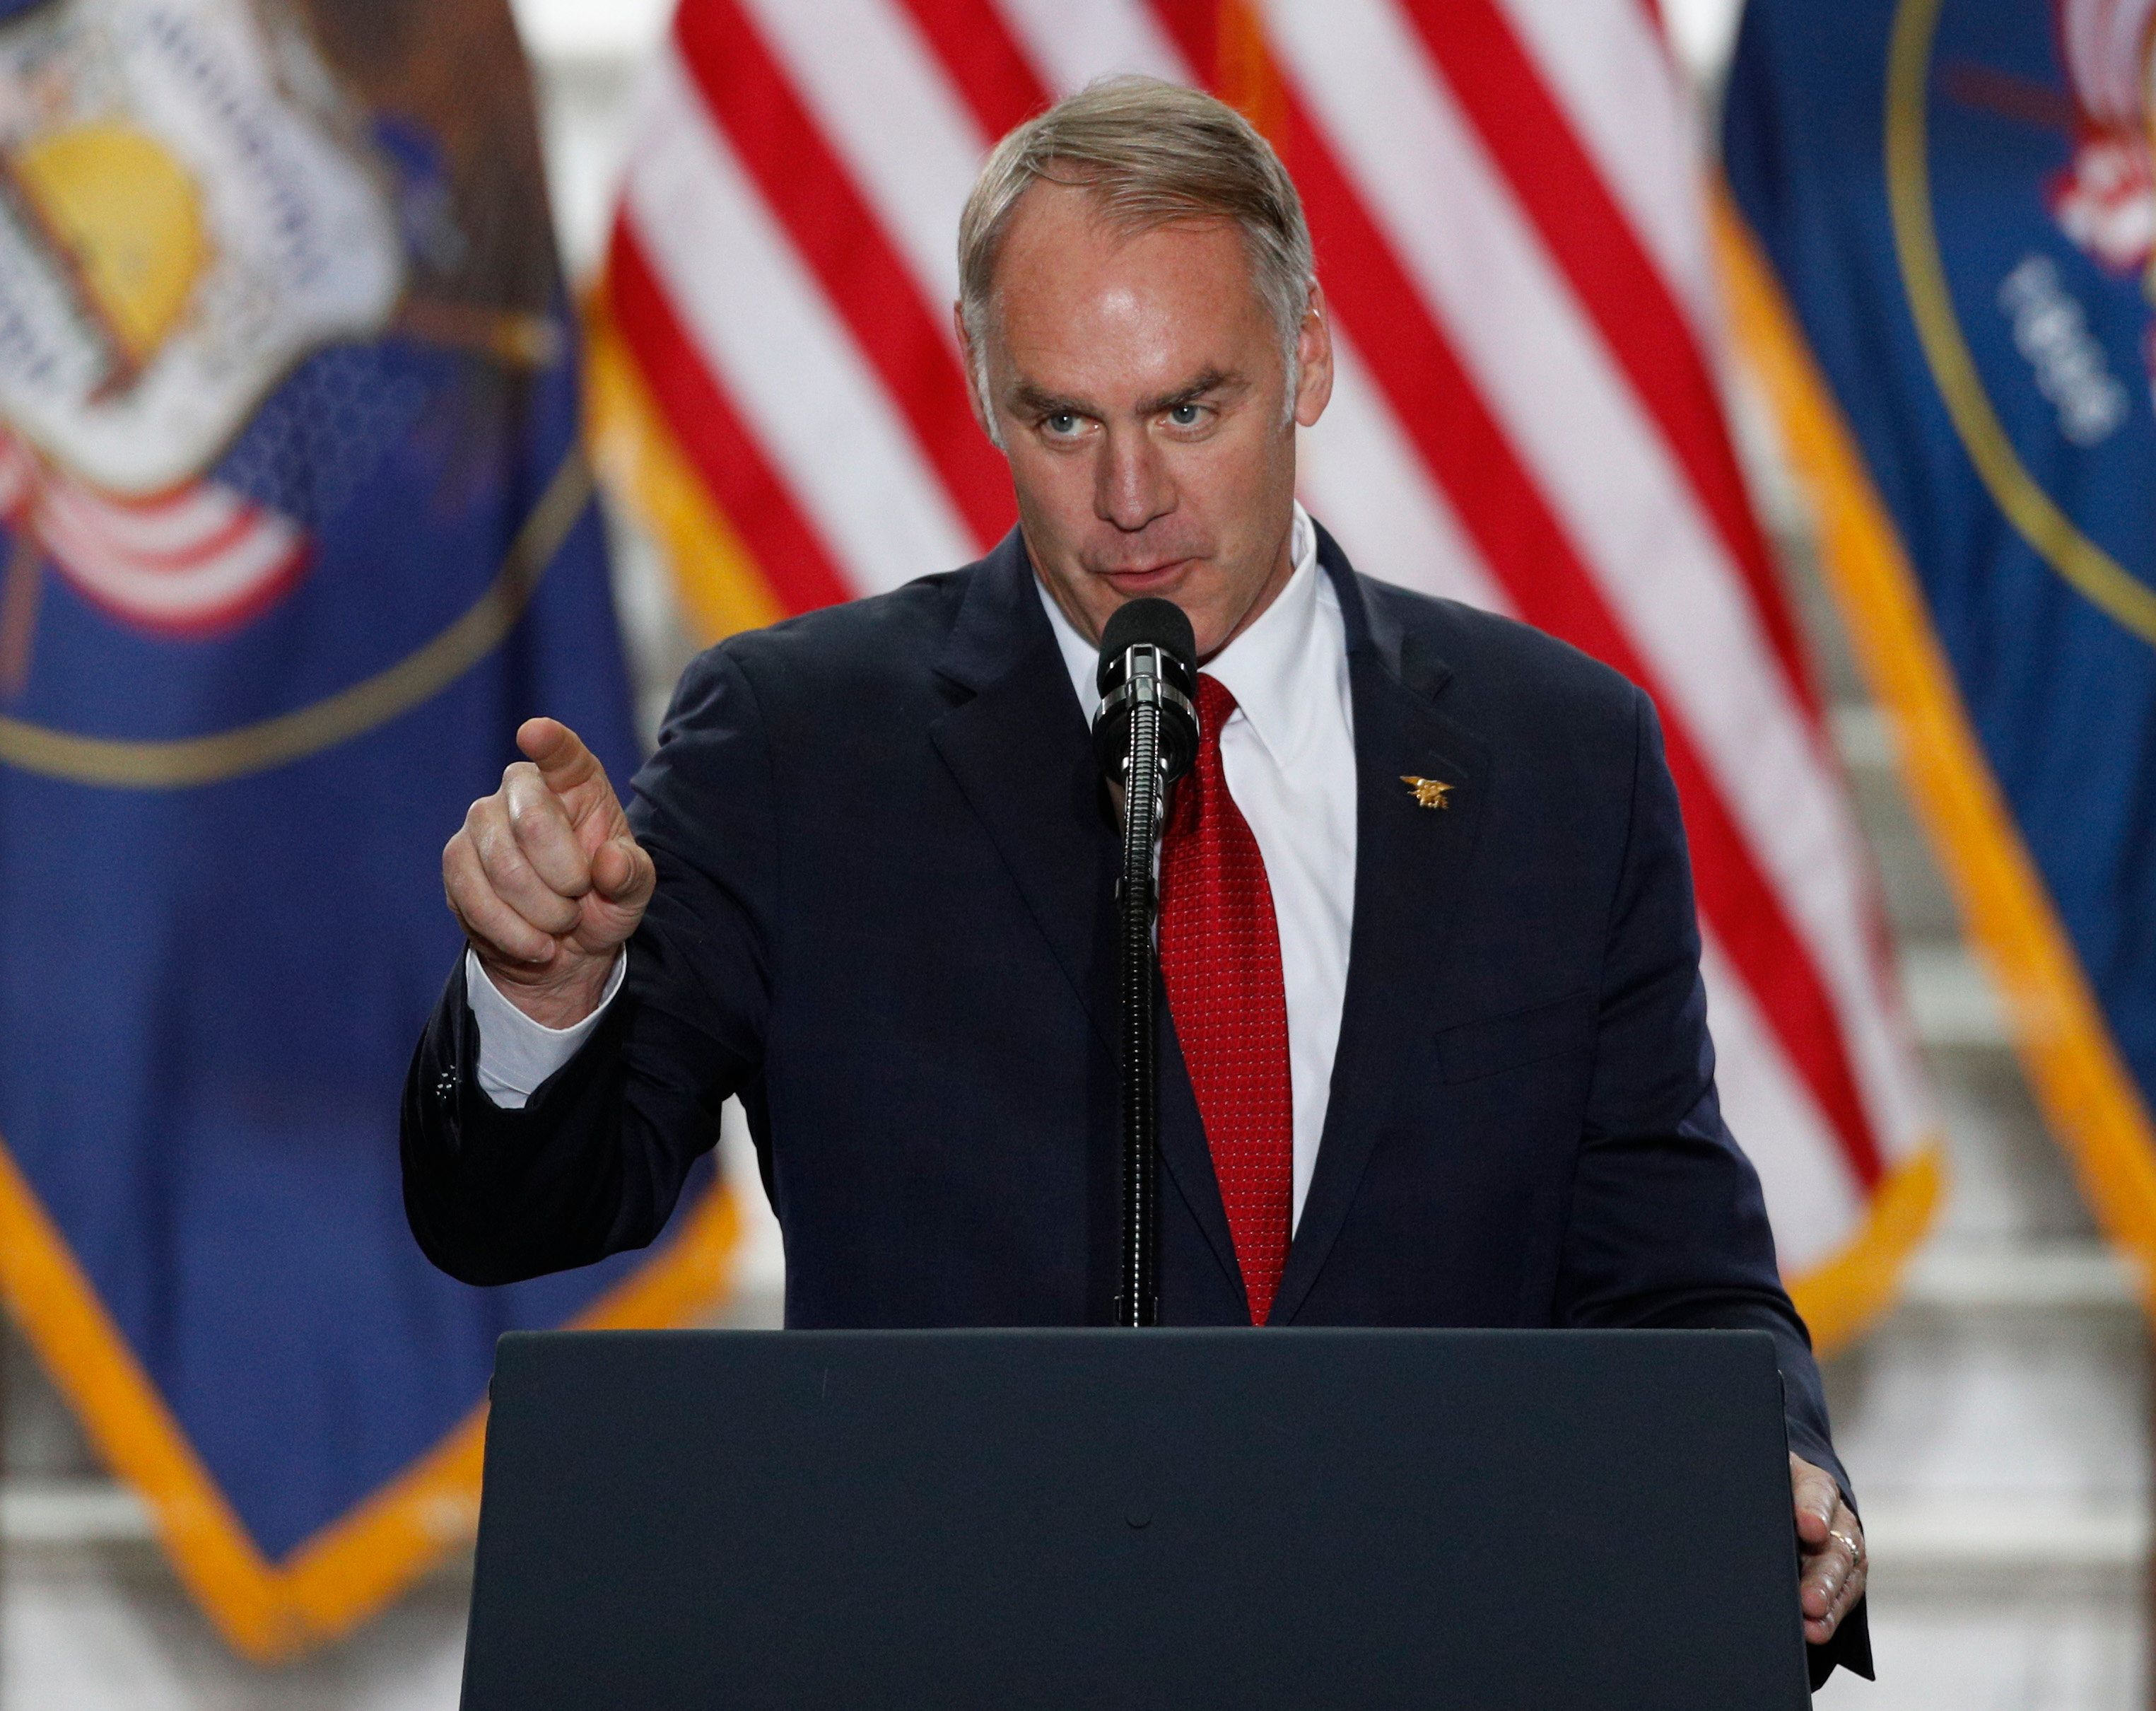 Ryan Zinke Dismisses Reports On His Use Of Helicopters As 'Fabricated'